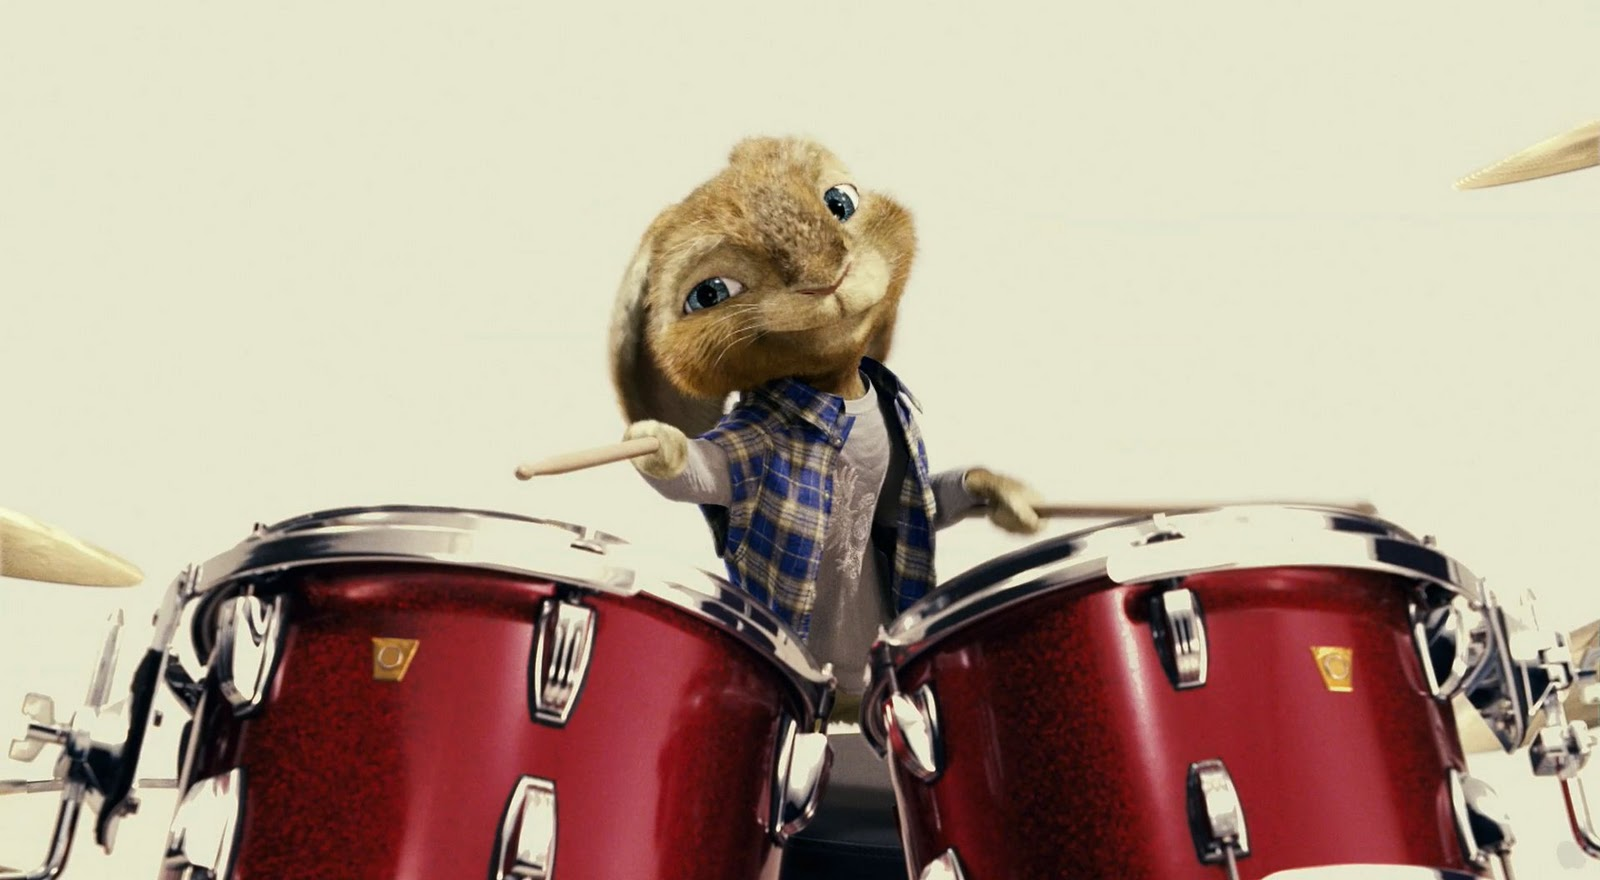 http://2.bp.blogspot.com/-Css6zIZYEtg/TZVvQNqYgNI/AAAAAAAAA04/3ilq1738g9c/s1600/Easter-Bunny-drums-Hop-Movie-Wallpaper-8.jpg